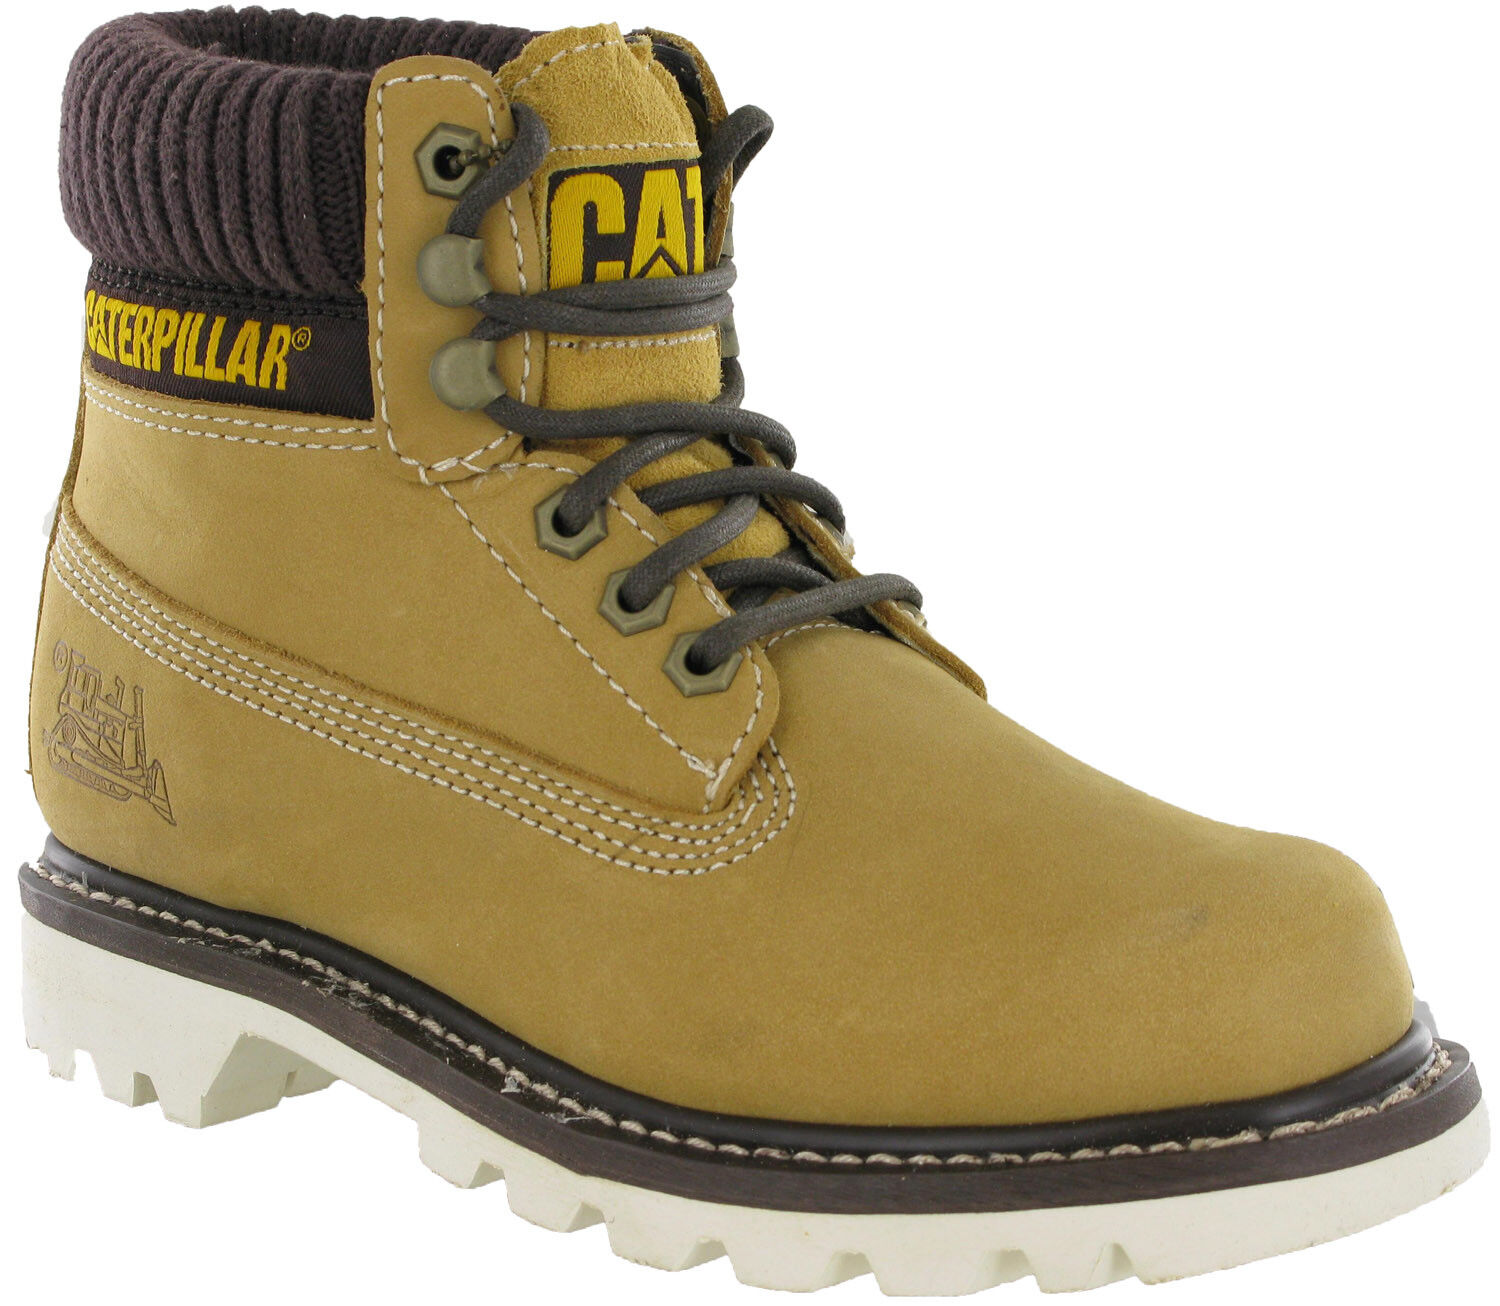 Caterpillar CAT Farbeado Mens Honey Lace Up Casual Walking Hiking Ankle Stiefel